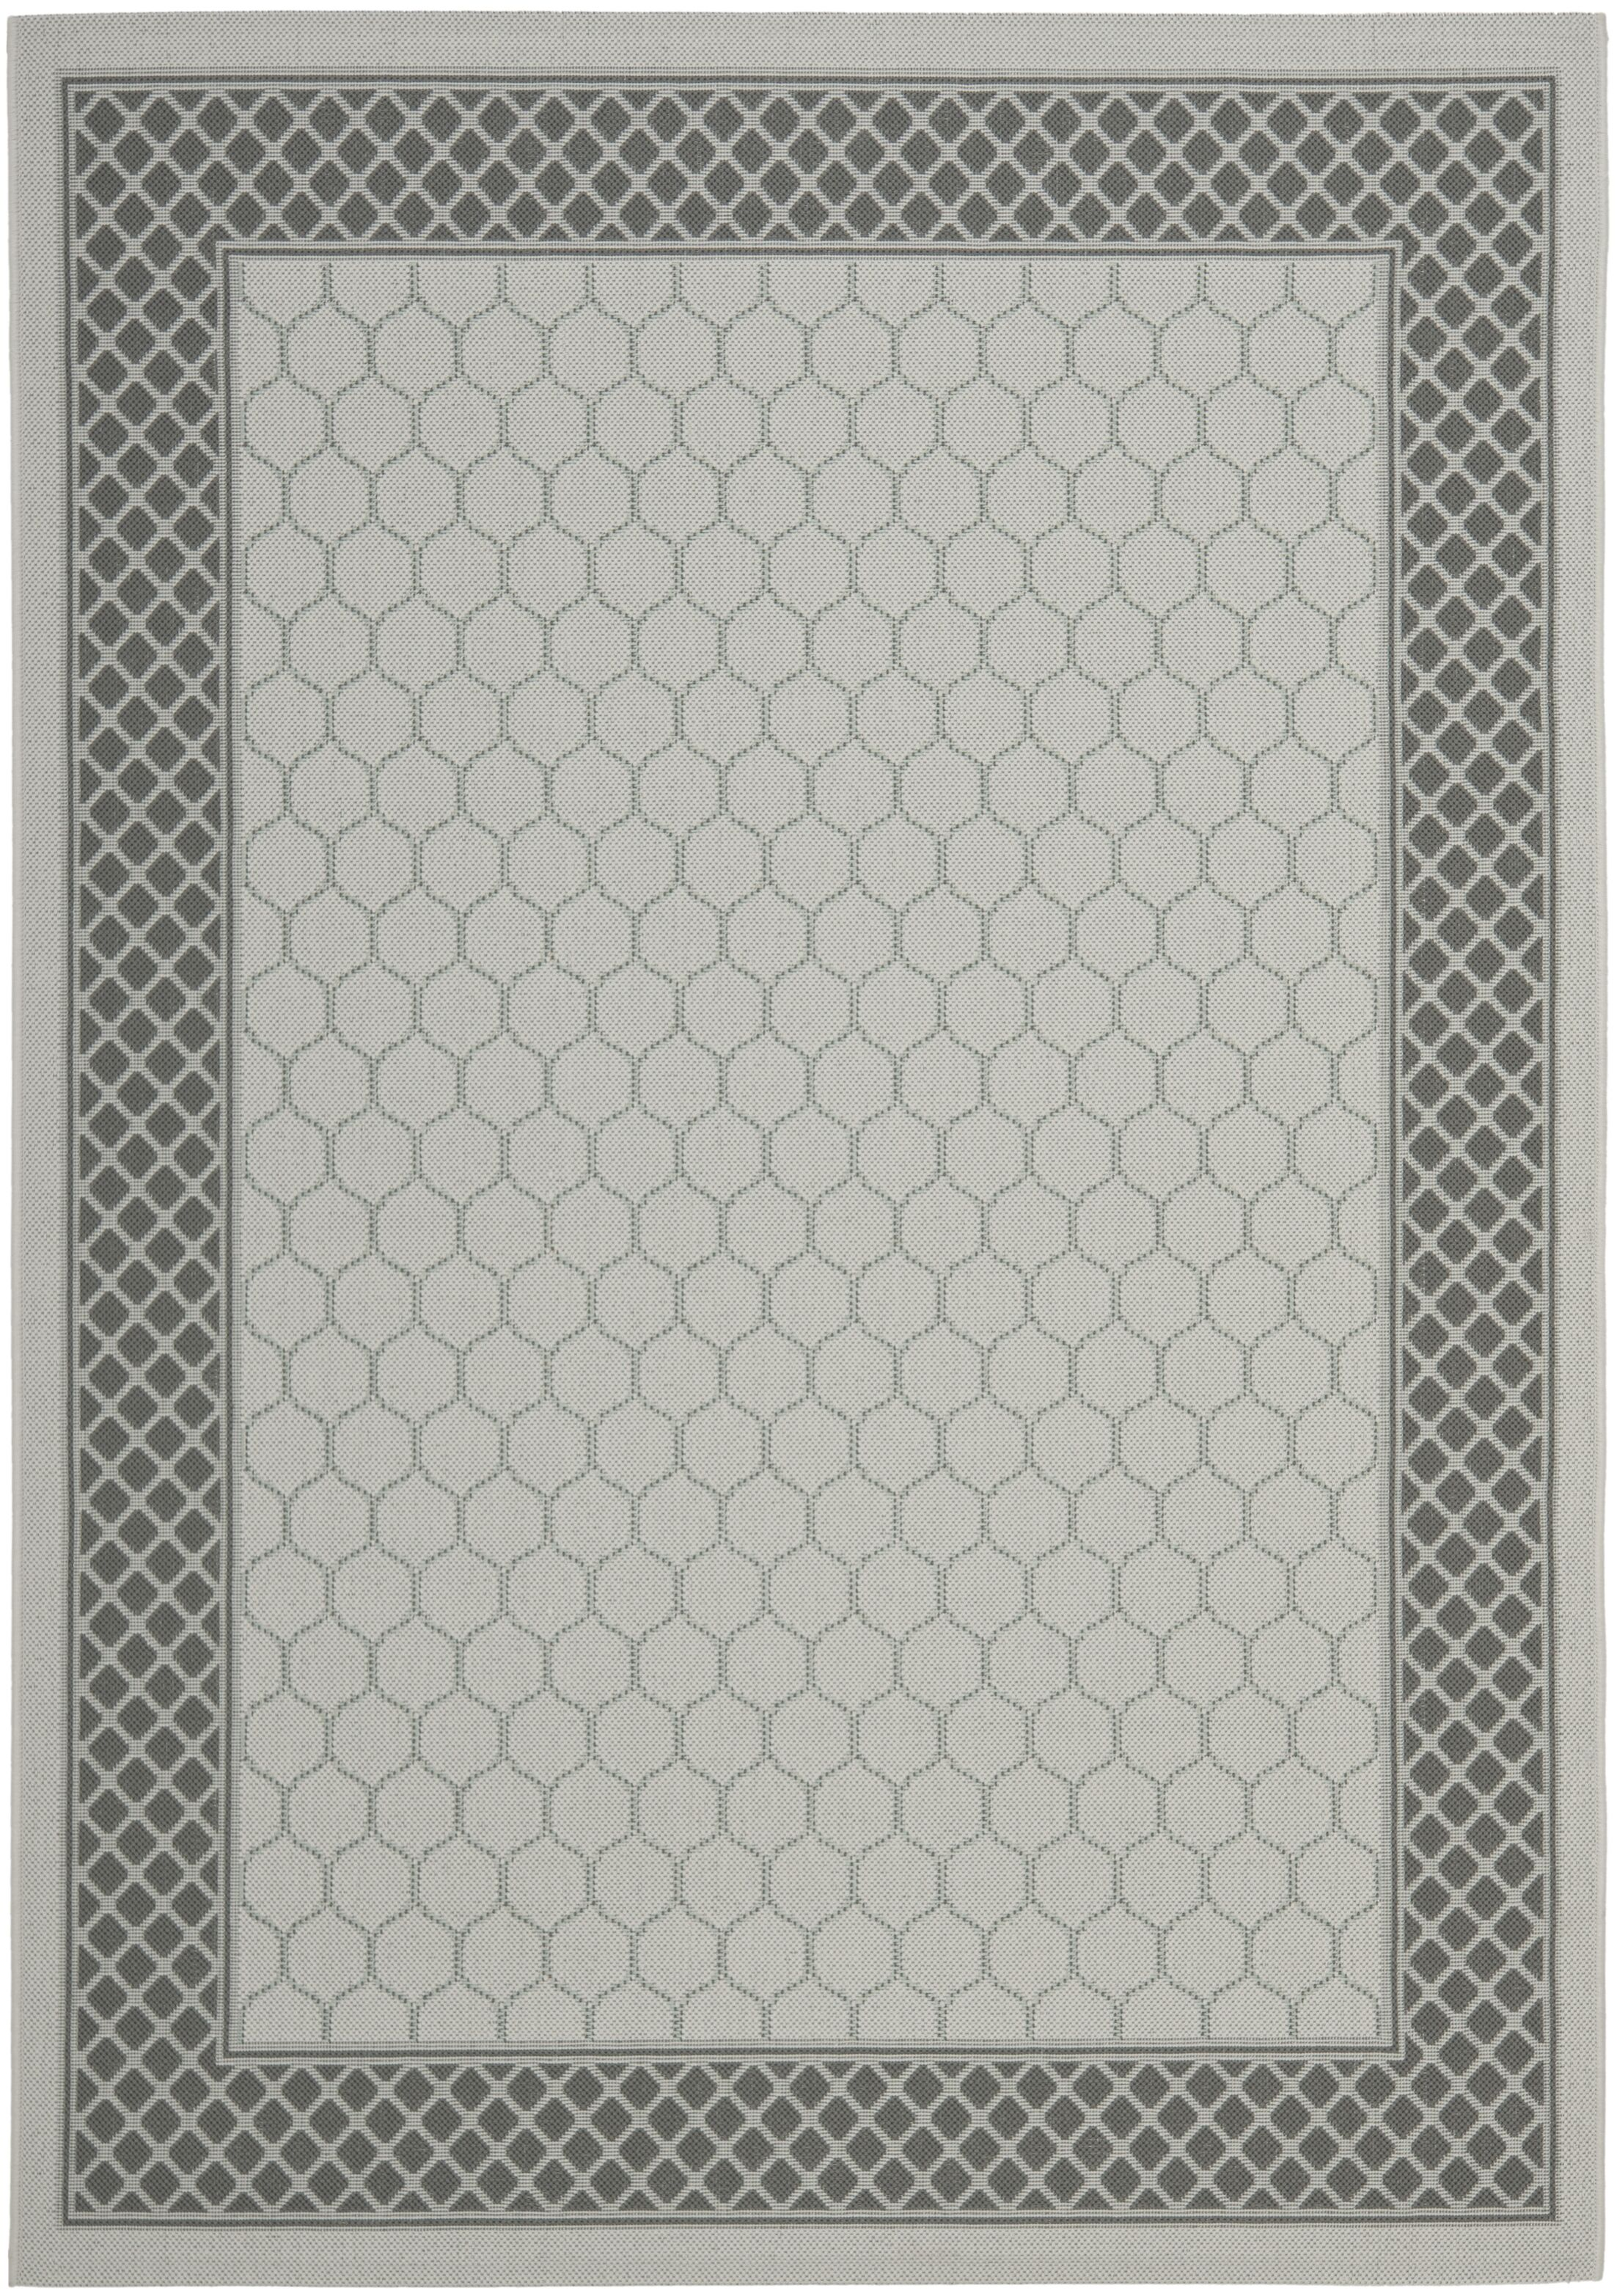 Mcwilliams Light Grey/Anthracite Indoor/Outdoor Rug Rug Size: Rectangle 8' x 11'2